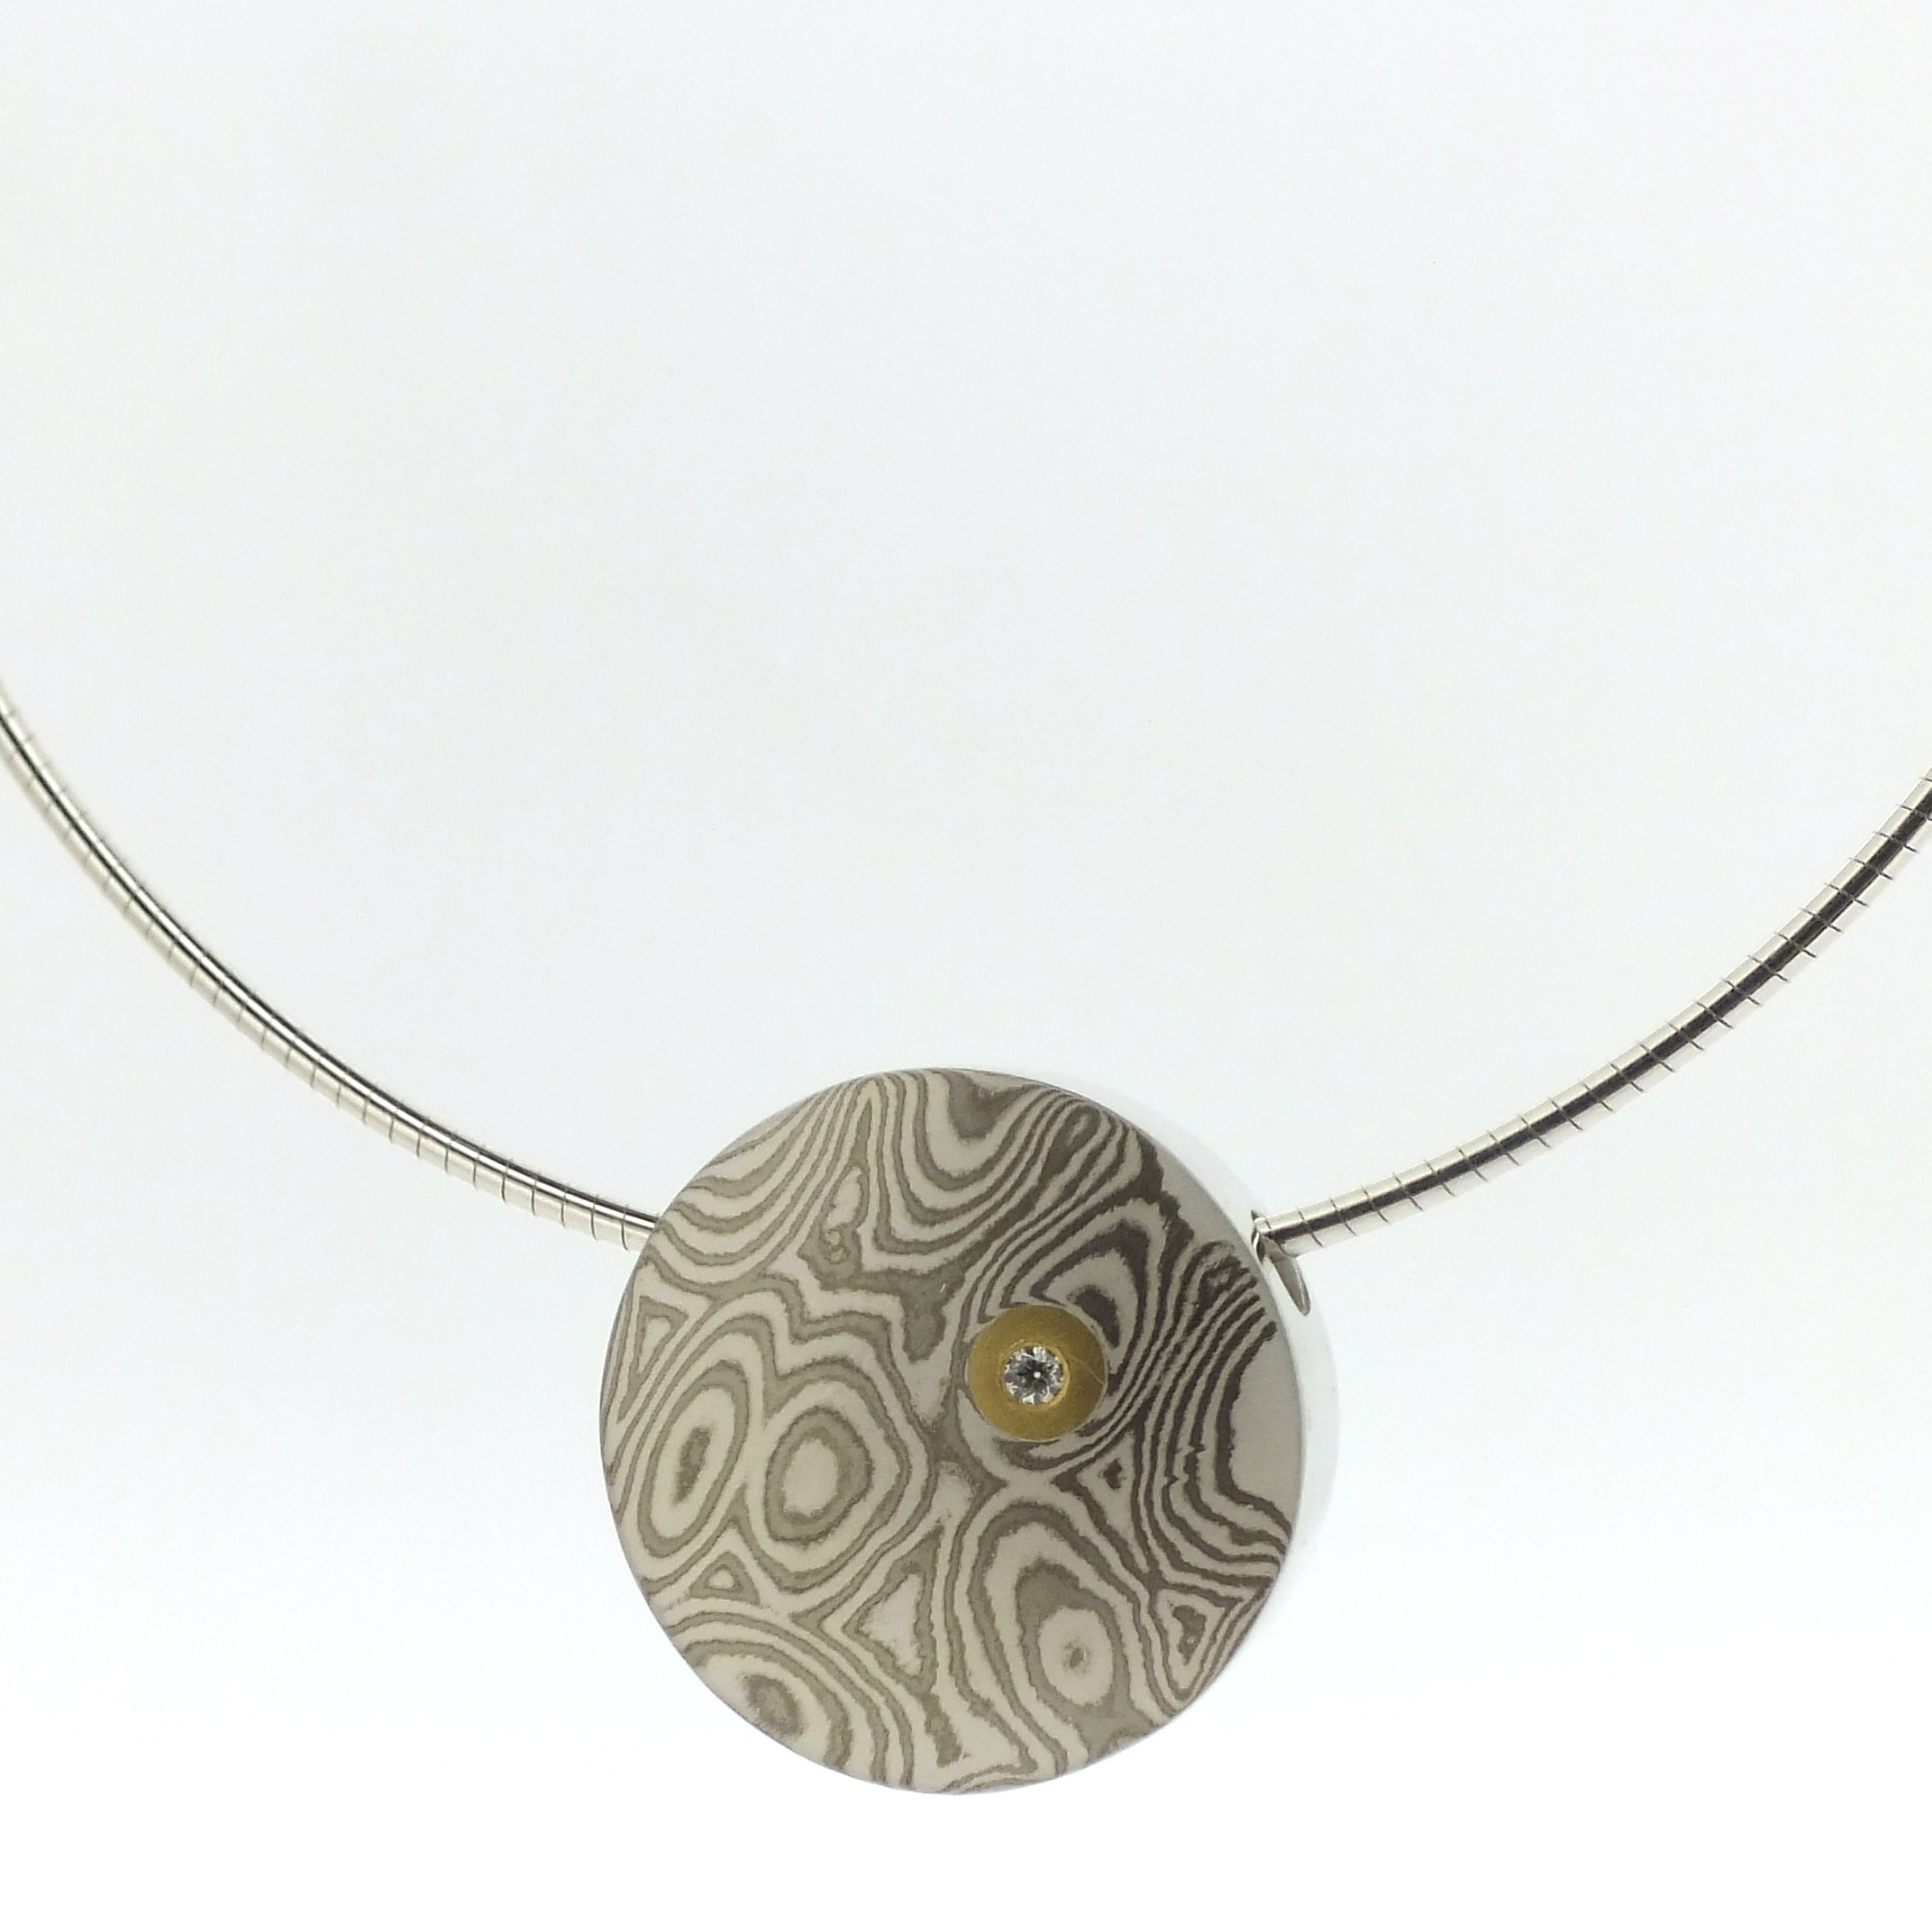 18k white gold and silver mokume gane small discus pendant with 22k gold and diamond detail